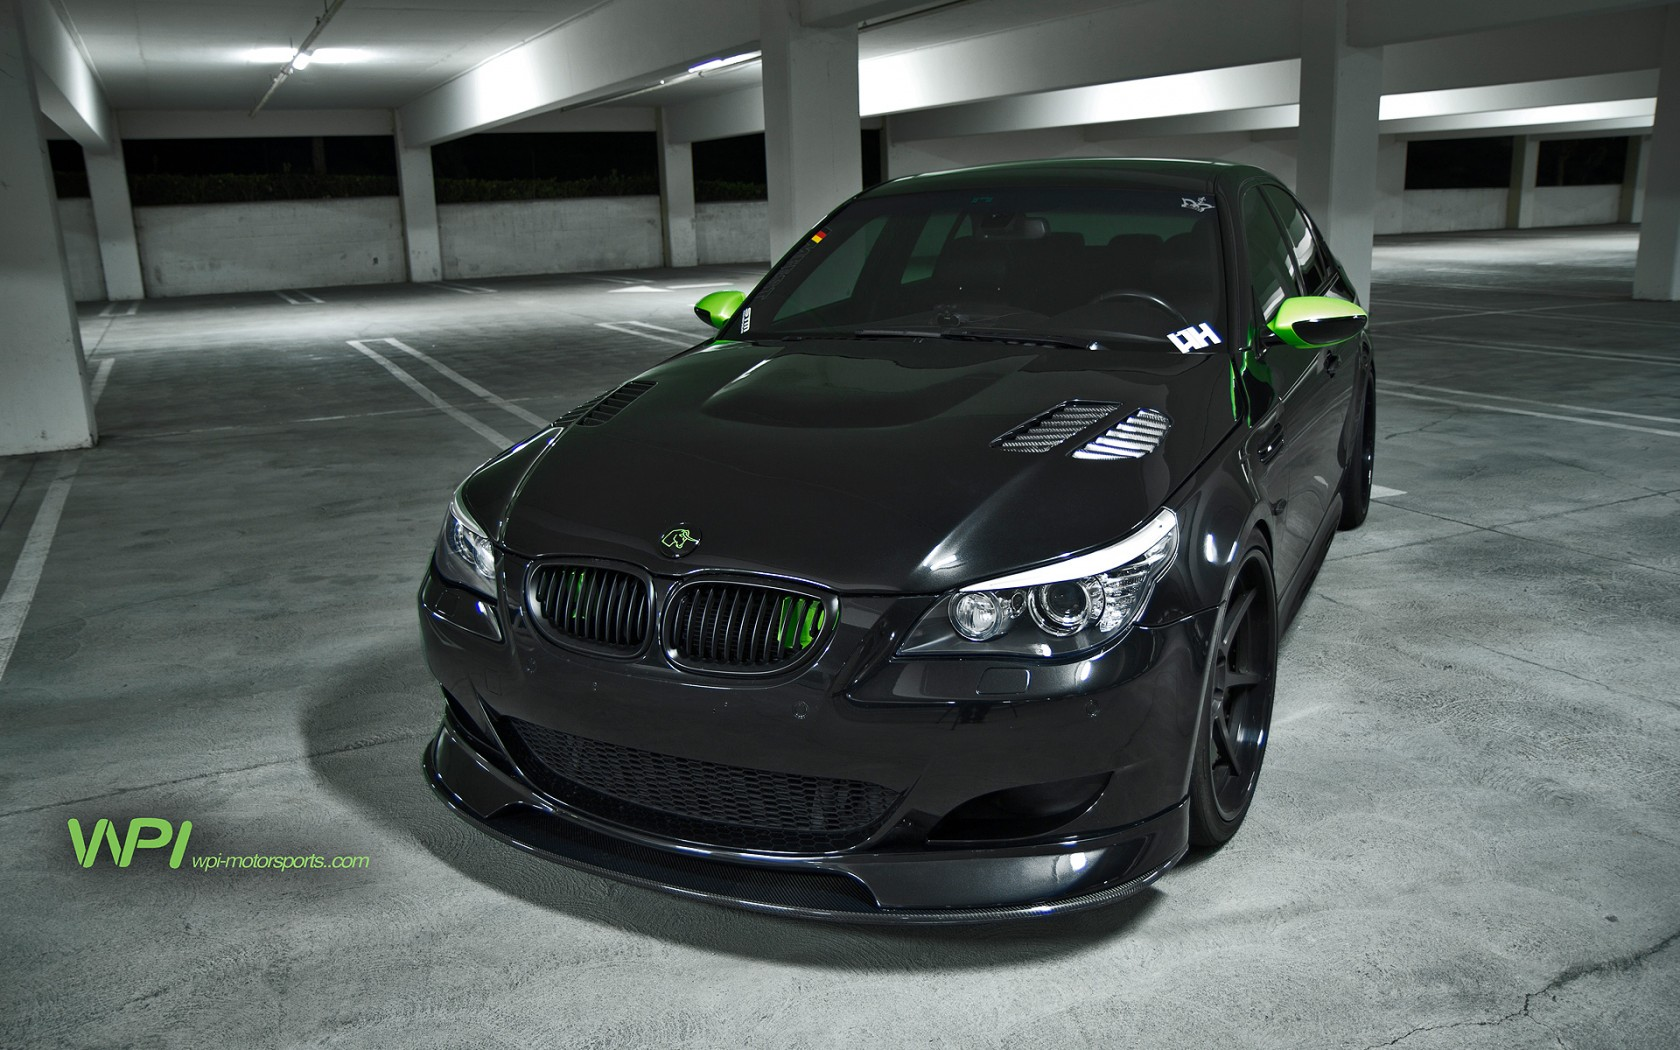 Bmw E60 M5 Modded Wallpaper Hd Car Wallpapers Id 2542